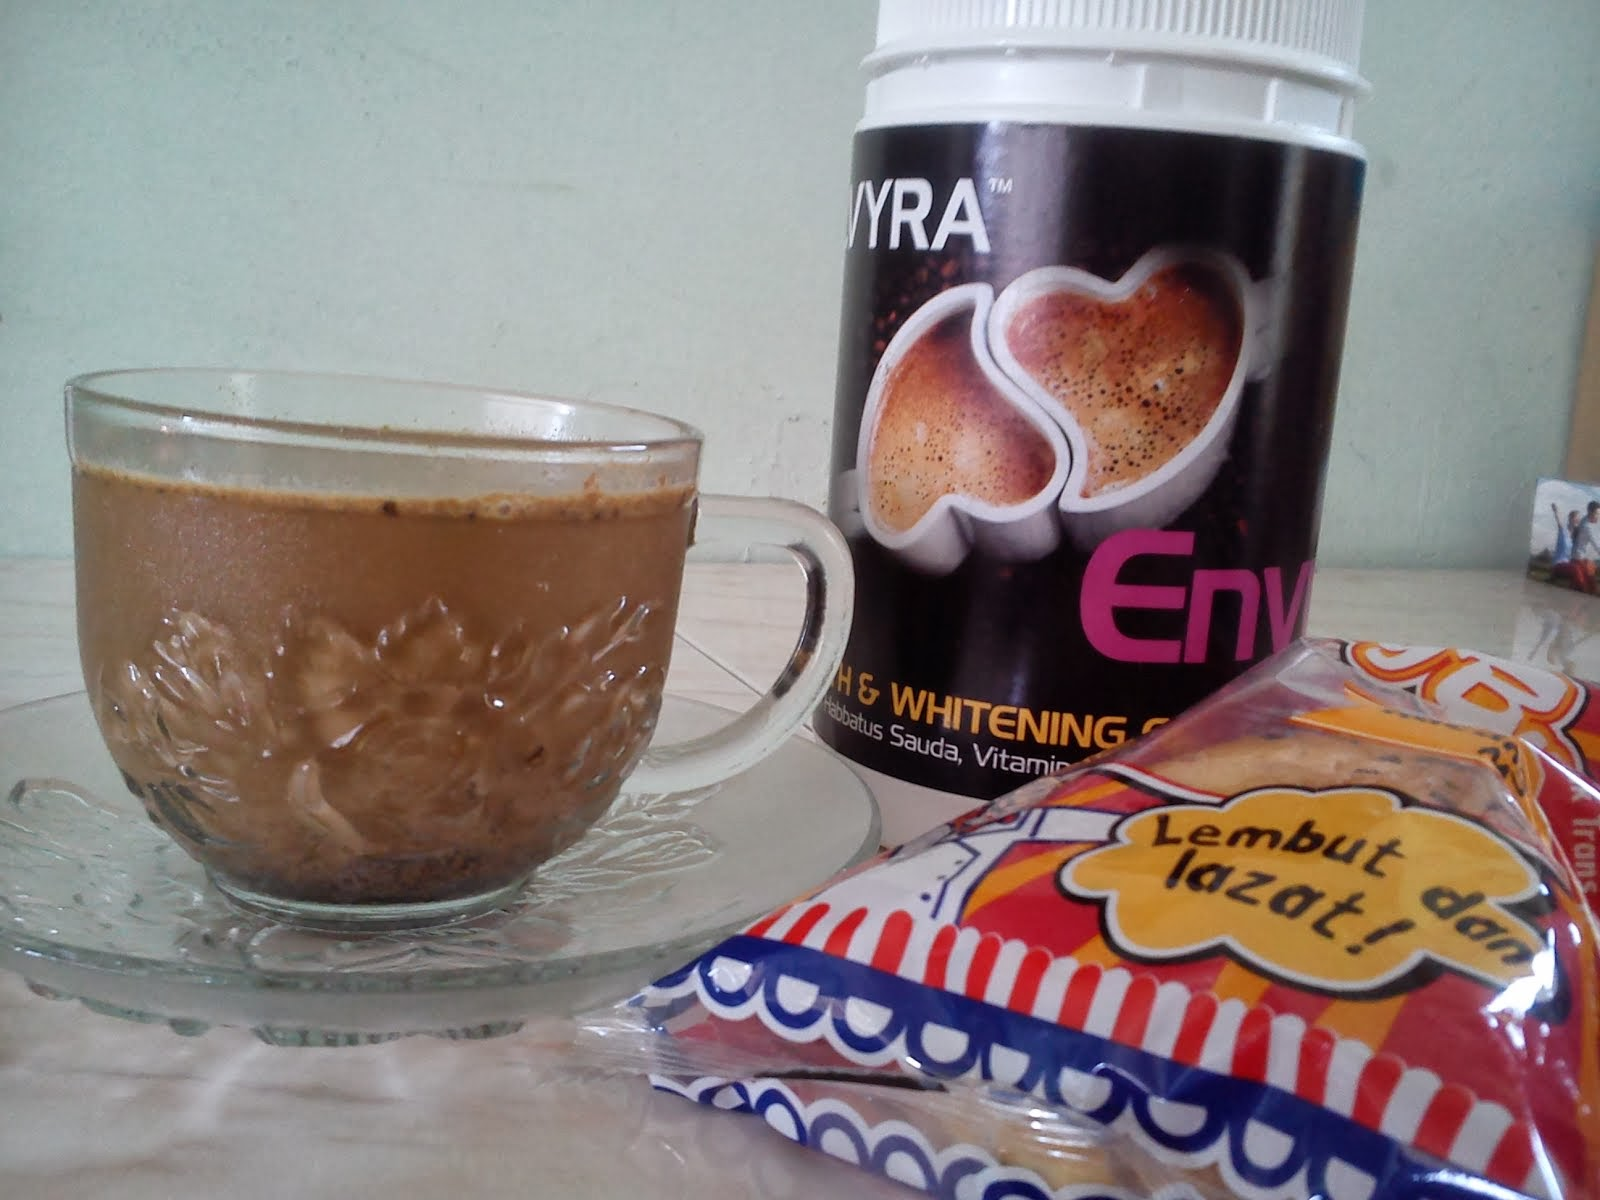 Elvyra Envy Coffee